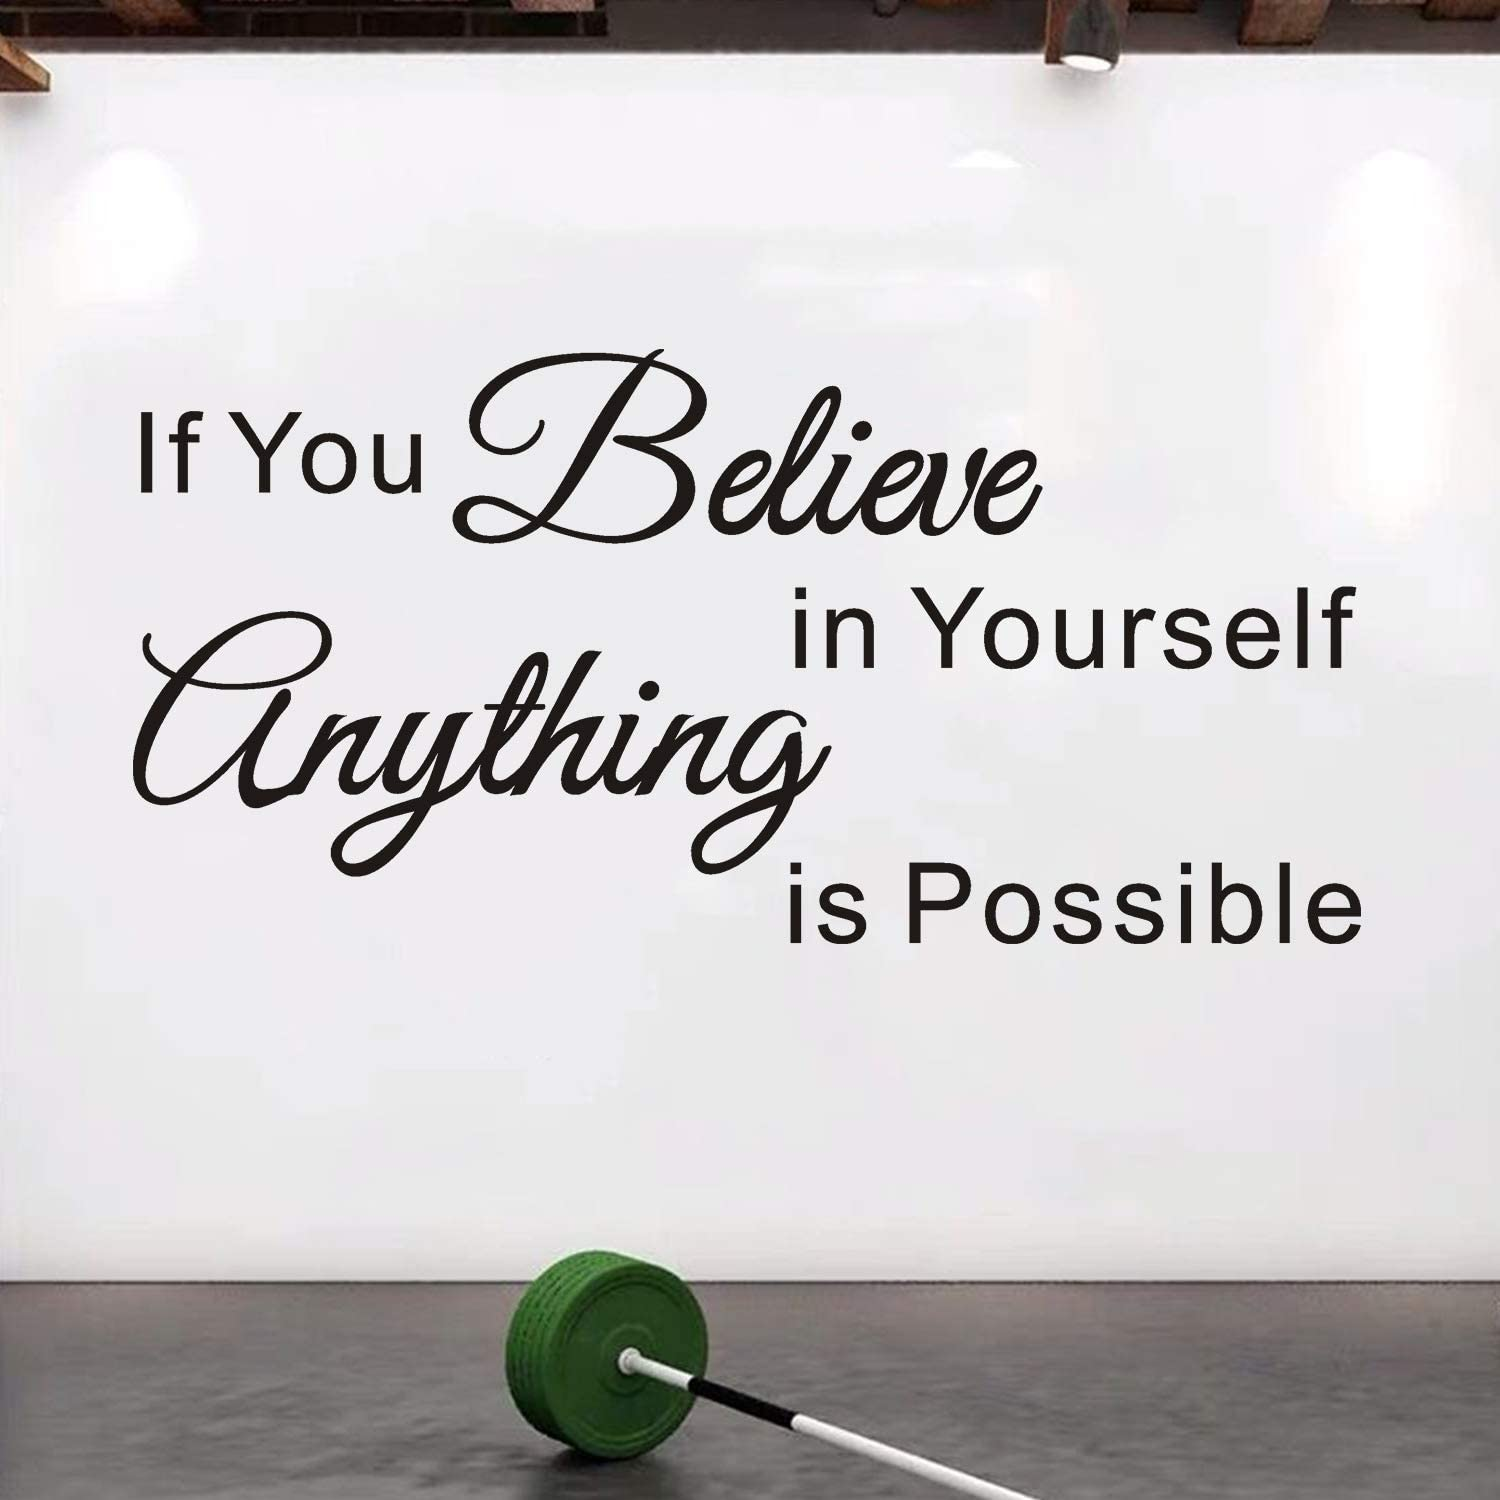 VODOE Quote Wall Decals, Gym Wall Decal, Inspirational Office School Classroom Bedroom Teen Dorm Room Life Motivational Art Decor Vinyl Stickers If You Believe in Yourself Anything Is Possible 33